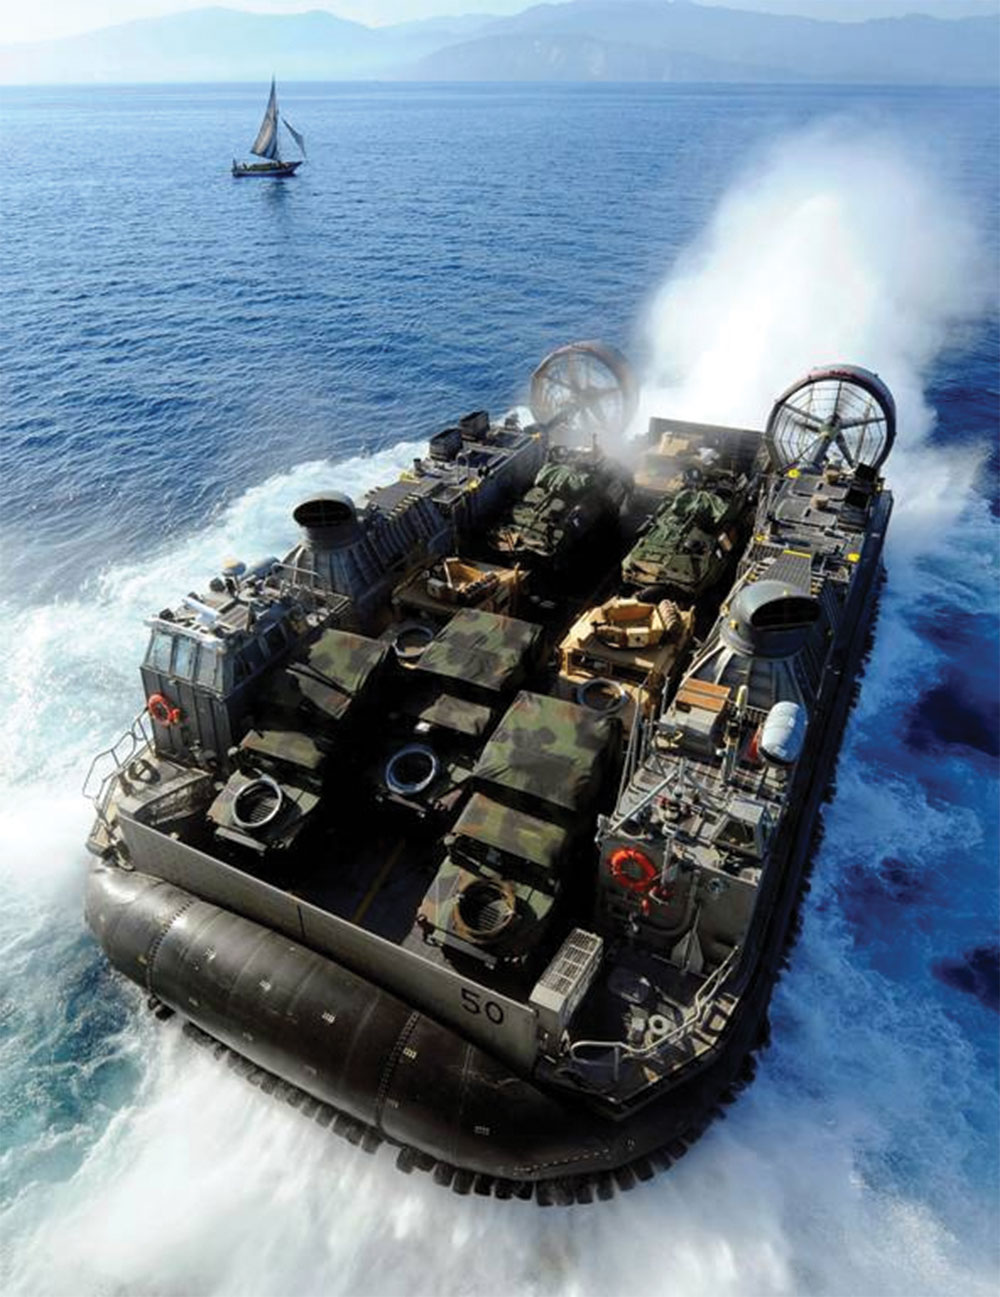 Vericor - High Speed Naval Propulsion Package Solutions